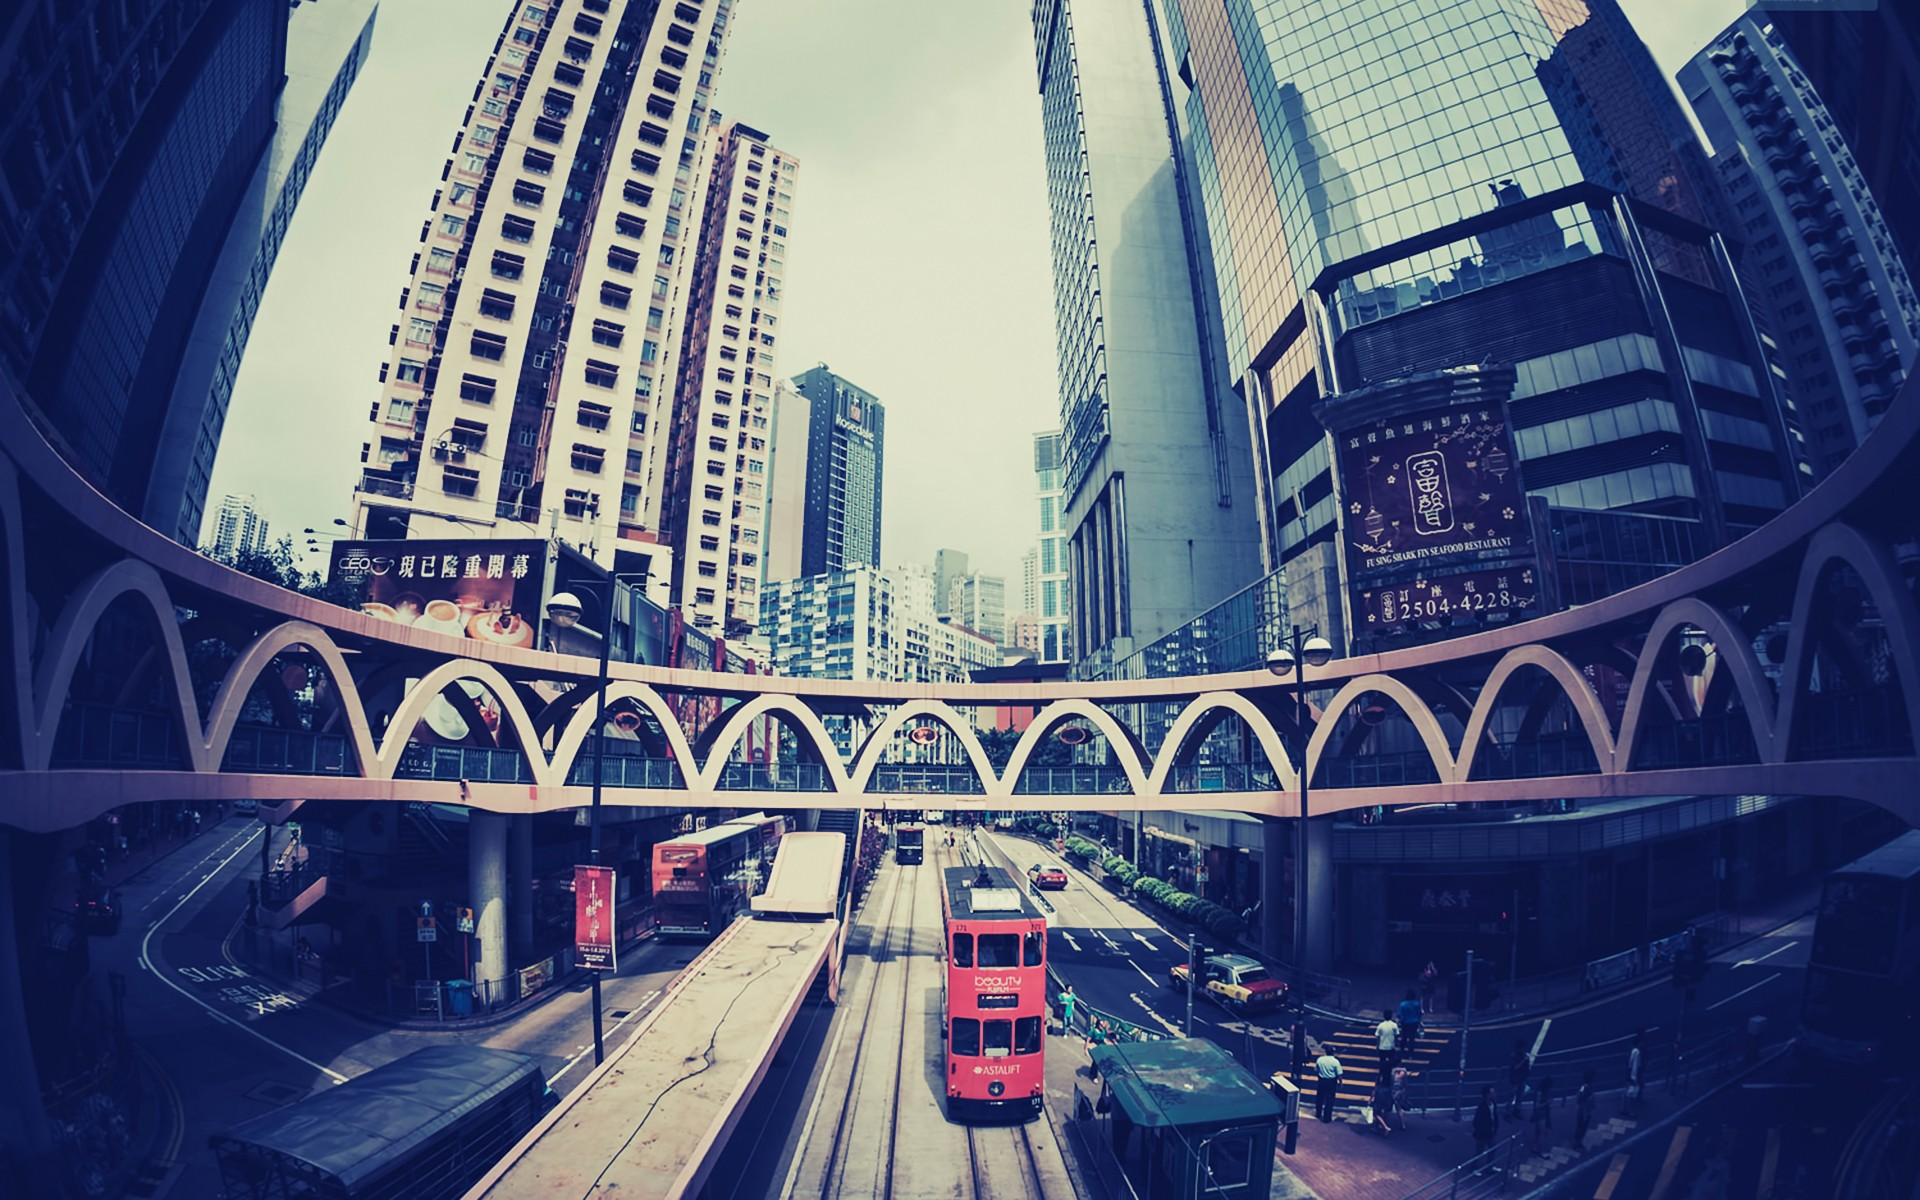 hong kong, fisheye effect, cities